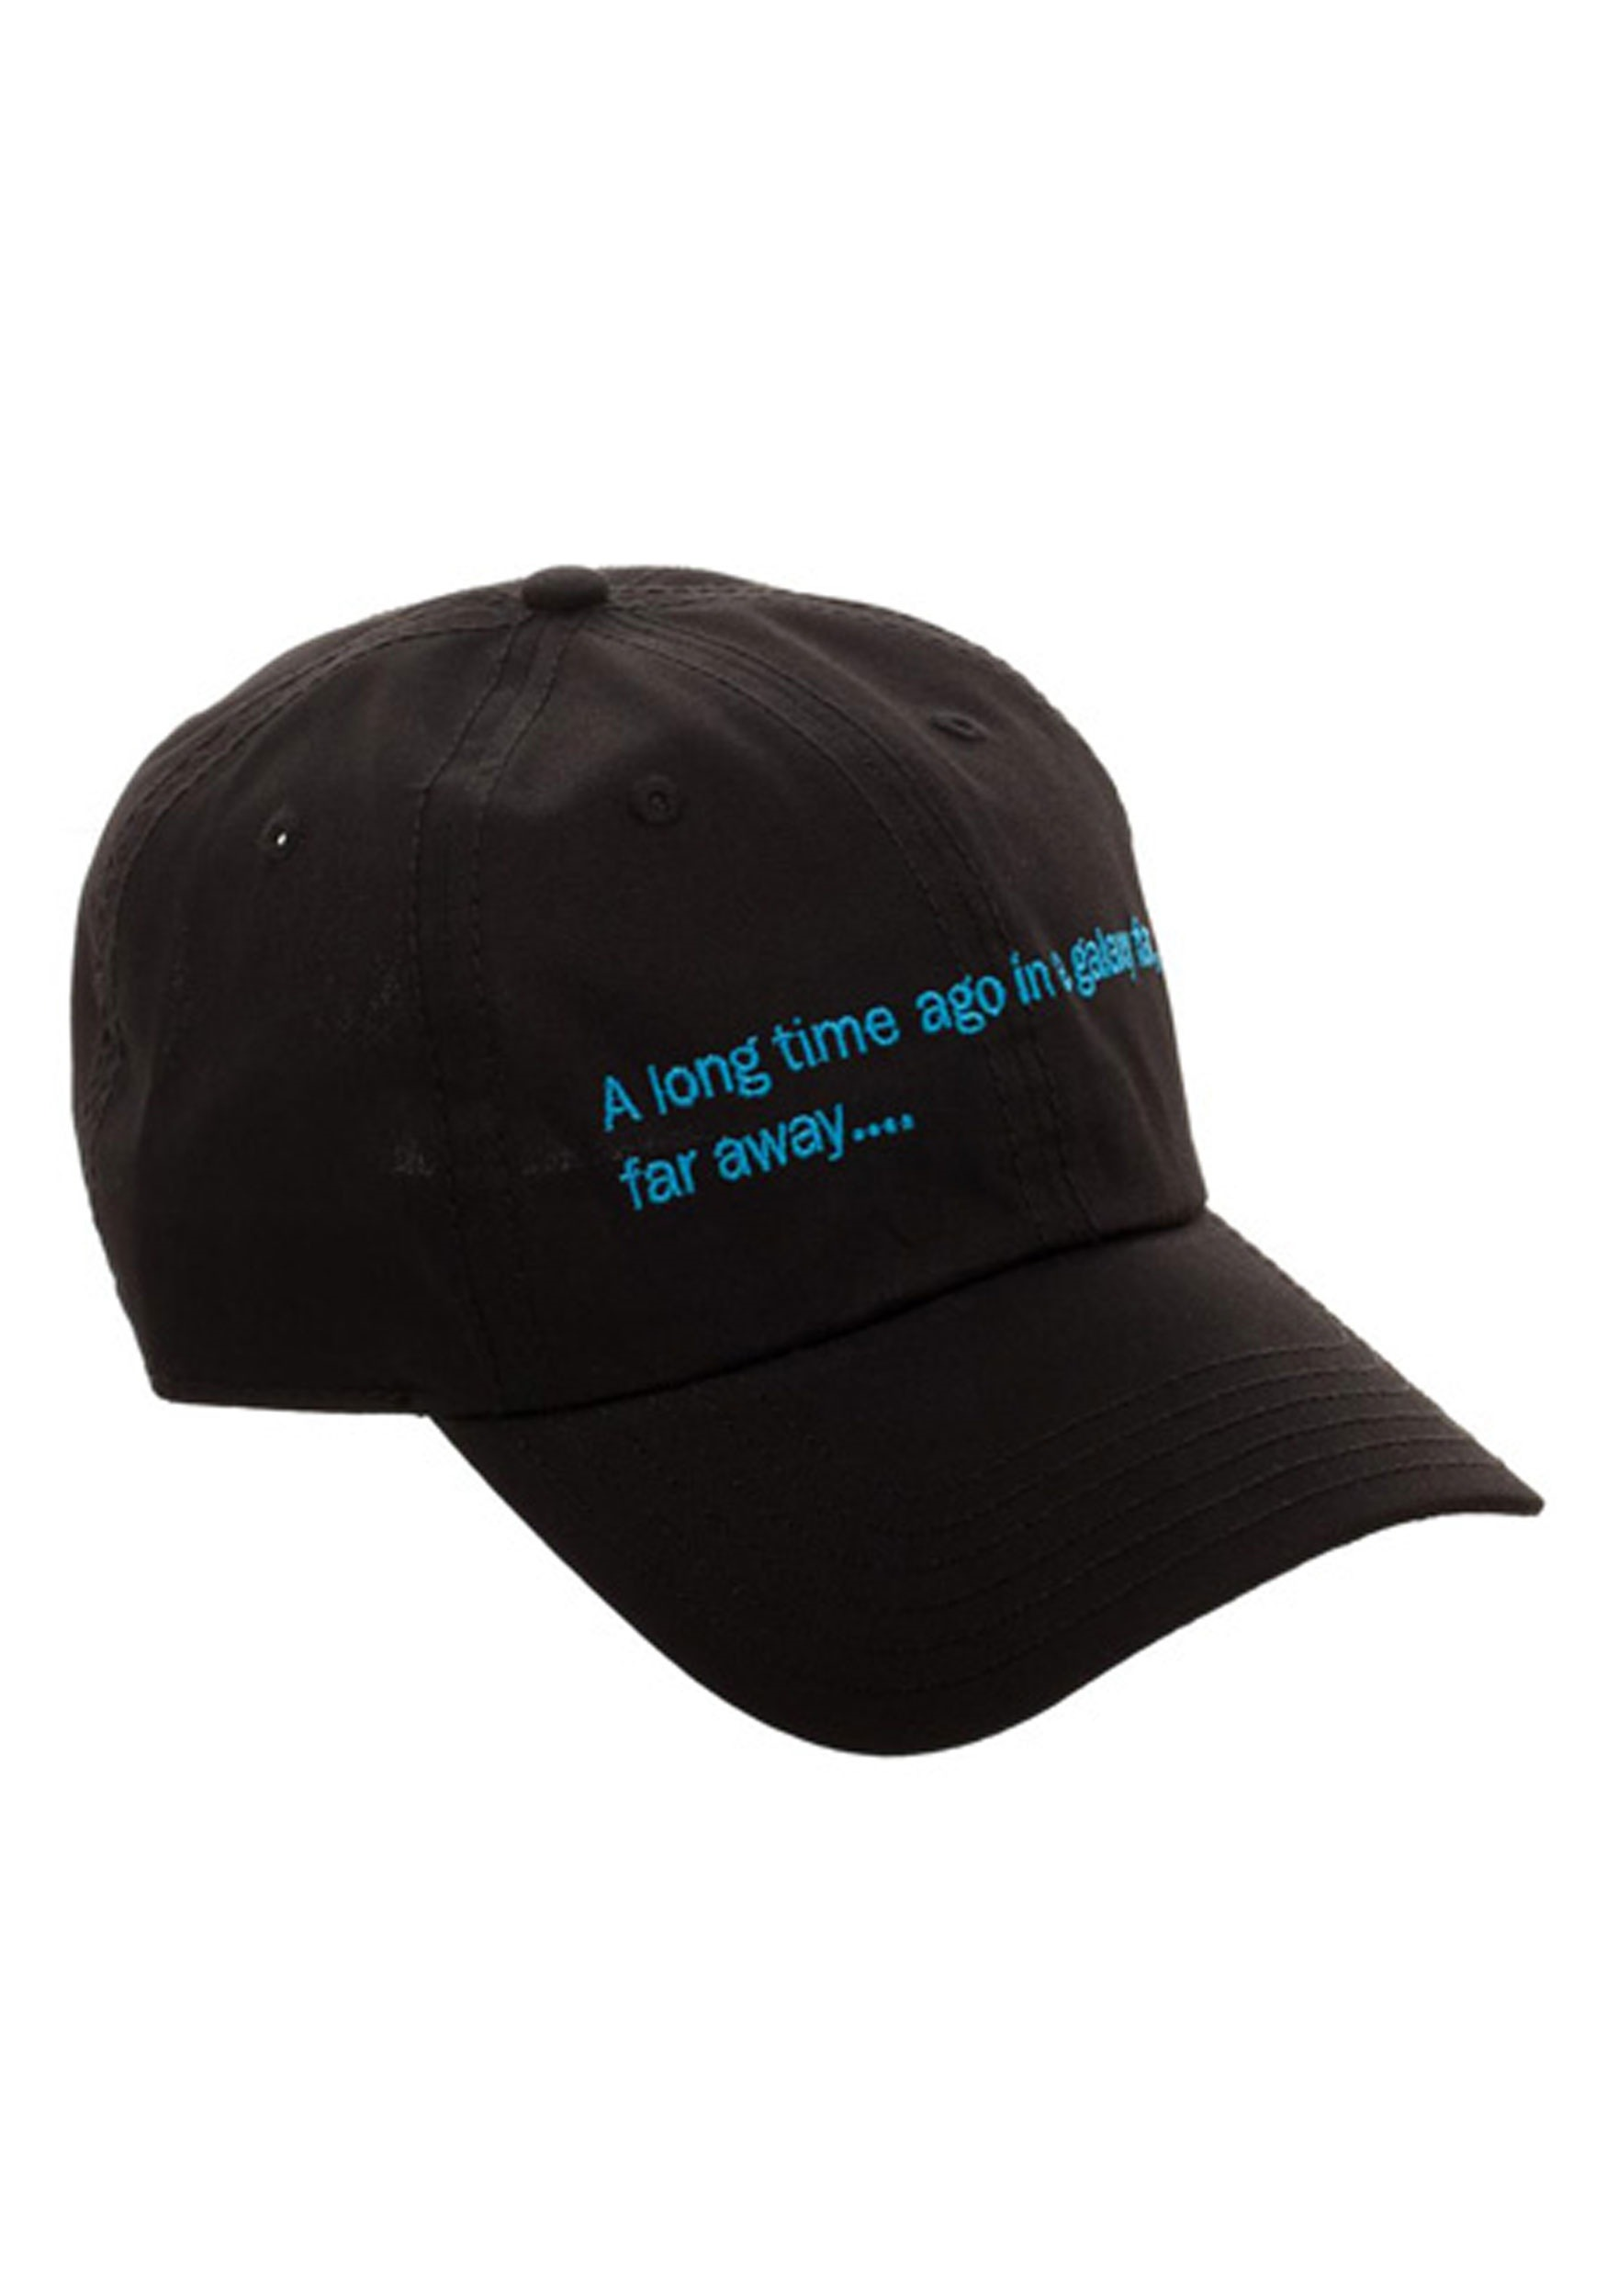 153503ce36f Star Wars A Long Time Ago Crawl Black Dad Hat